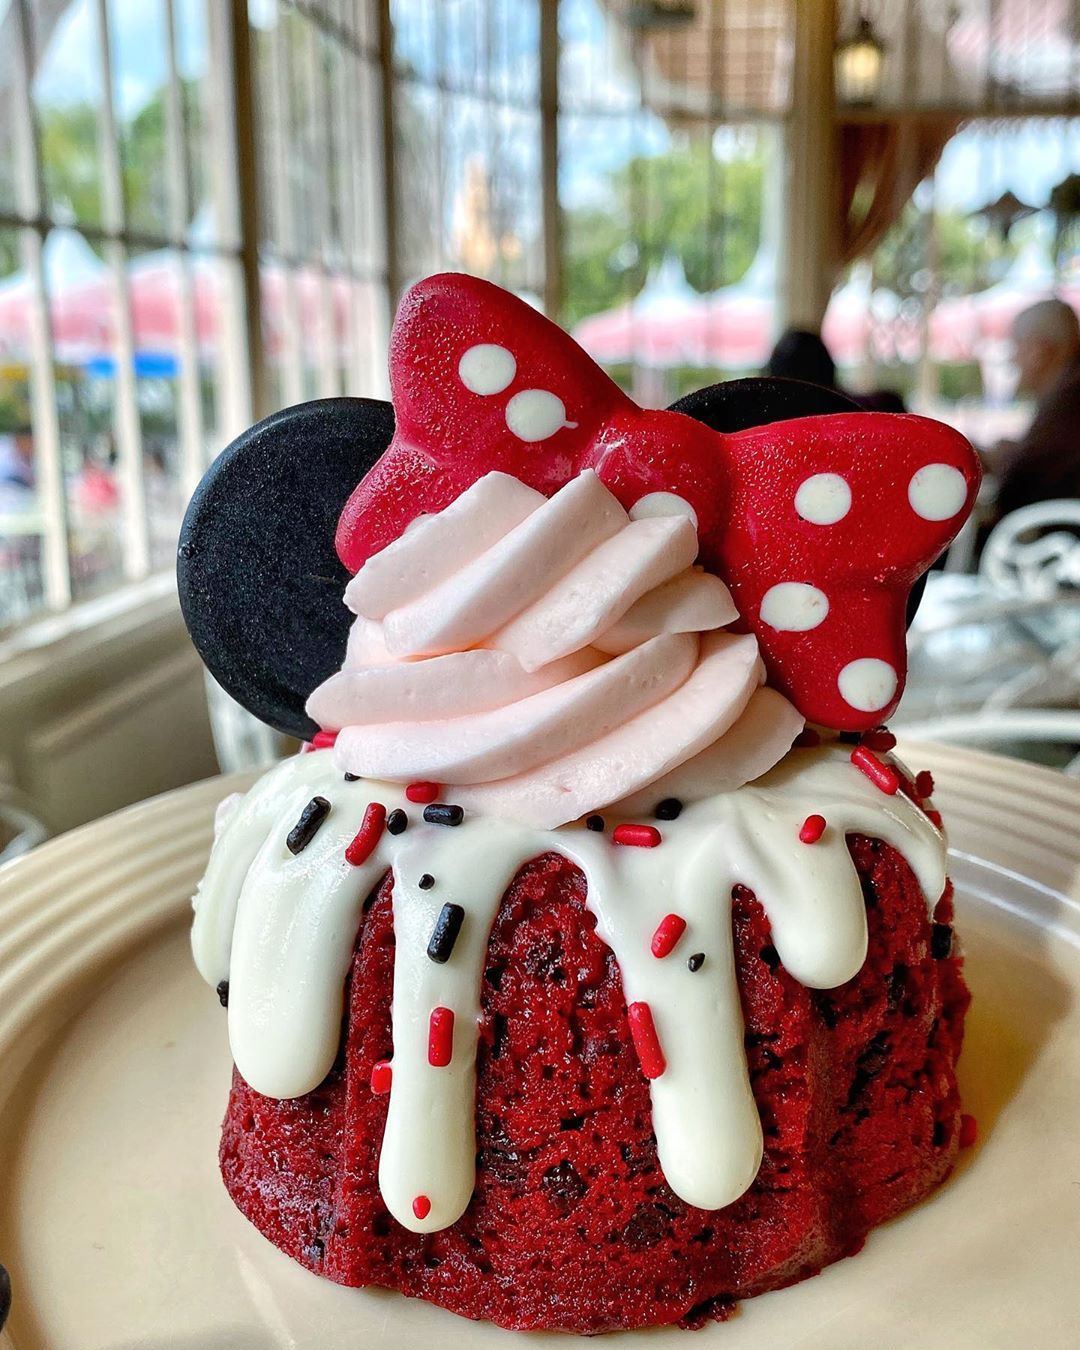 Love Is In The Air And I Have My Eyes And Stomach Set On This Adorable Minnie Mouse Red Velvet Bundt Cake In 2020 Disneyland Food Disney Themed Food Disney Desserts